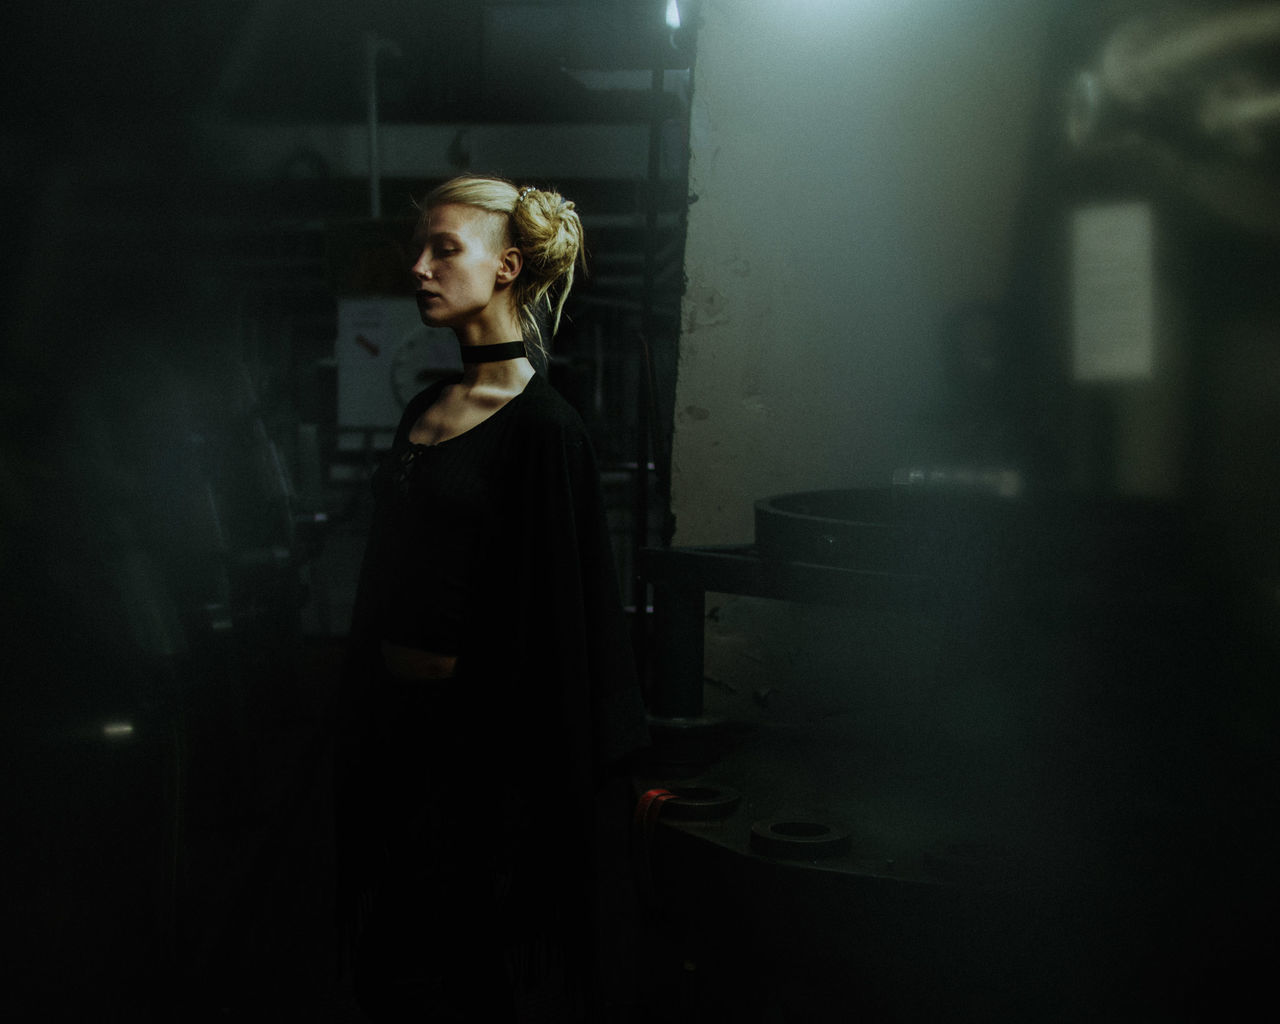 SIDE VIEW OF YOUNG WOMAN STANDING IN DARK